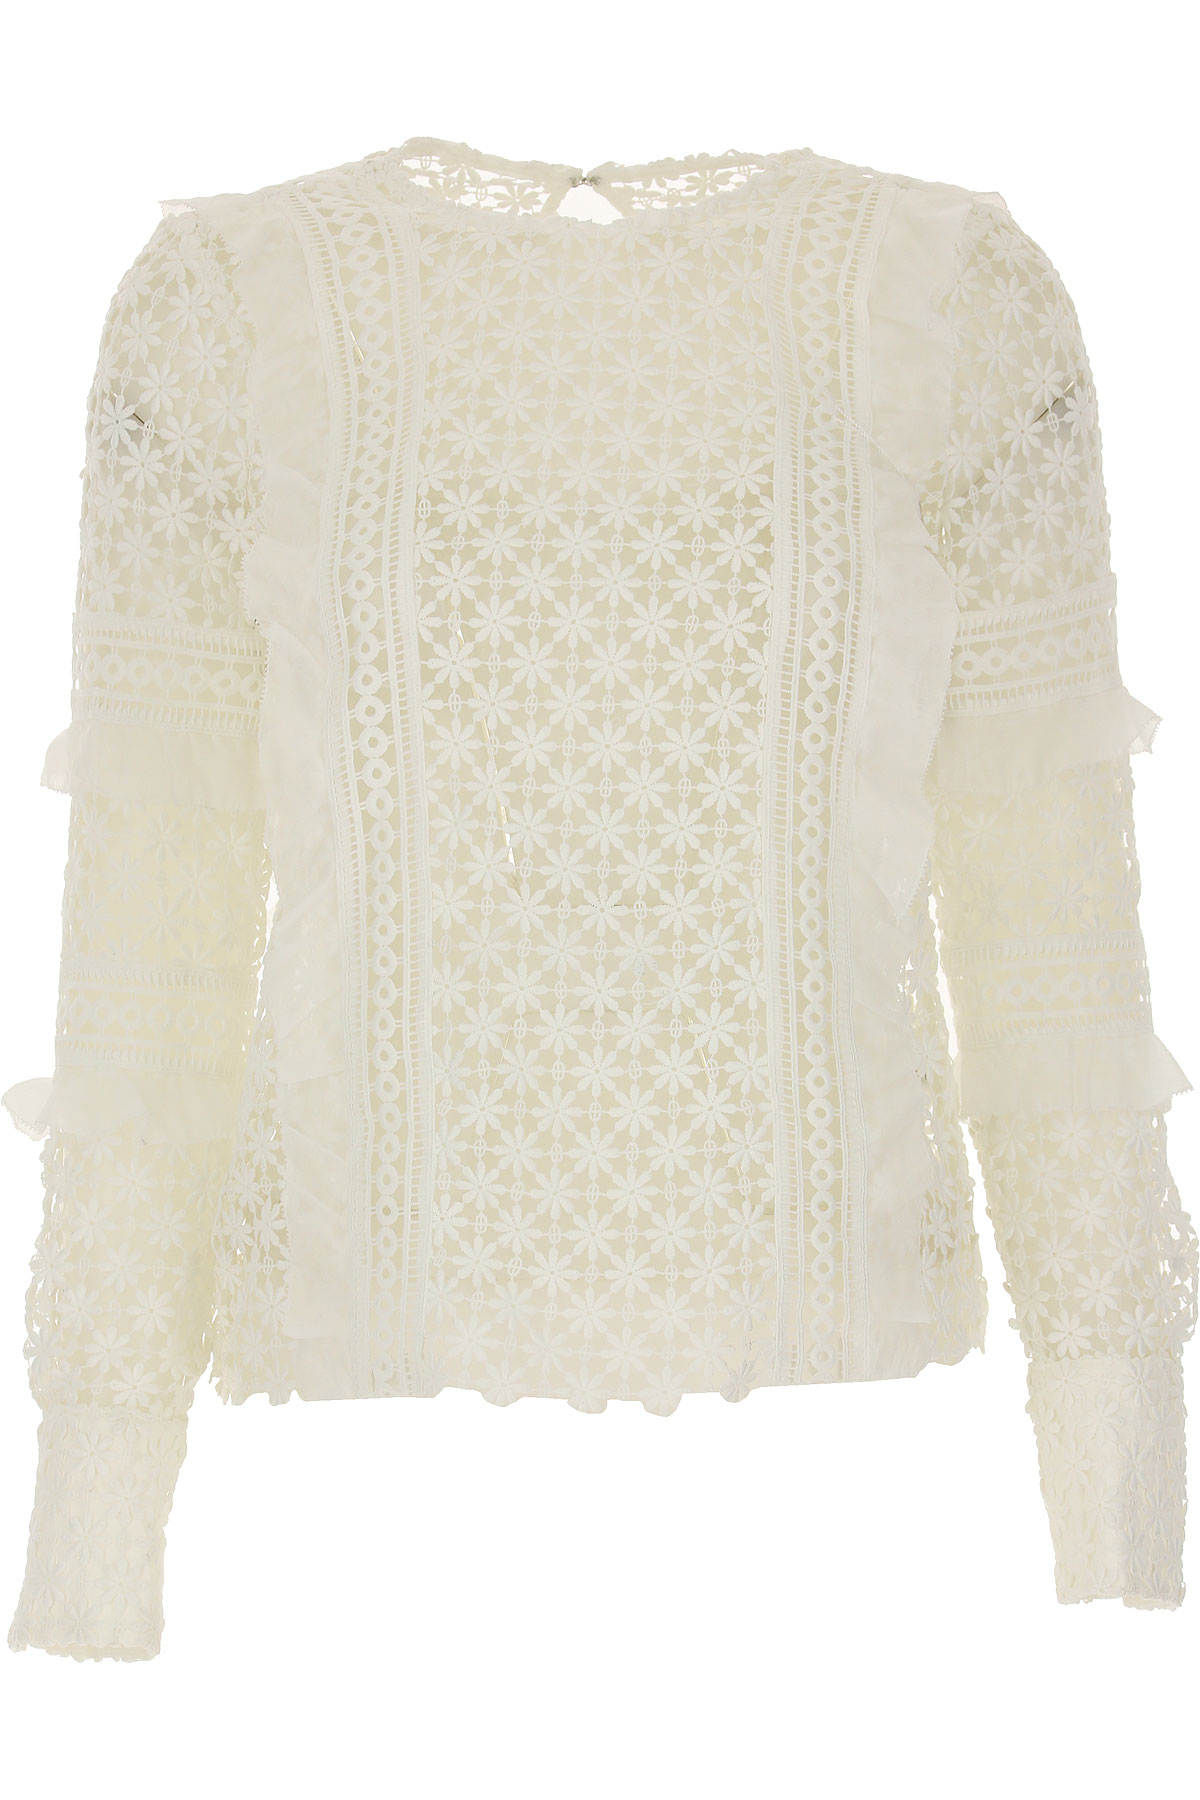 Self-portrait Top for Women On Sale in Outlet, White, polyester, 2017, UK 8 - US 6 - EU 40 UK 12 - US 10 - EU 44